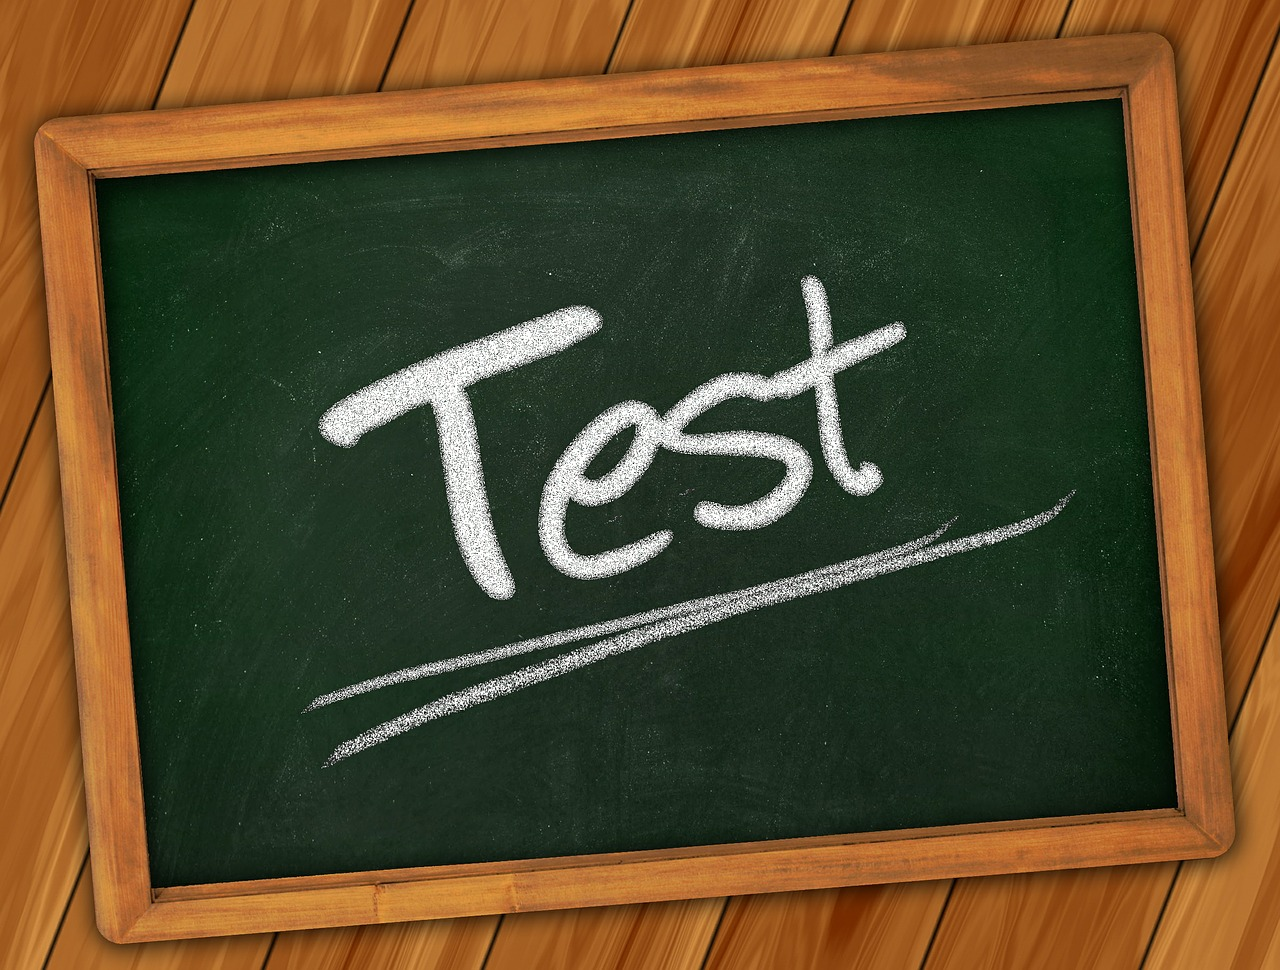 GUEST POST: What Causes Test-score Inflation? Comparing Two Theories